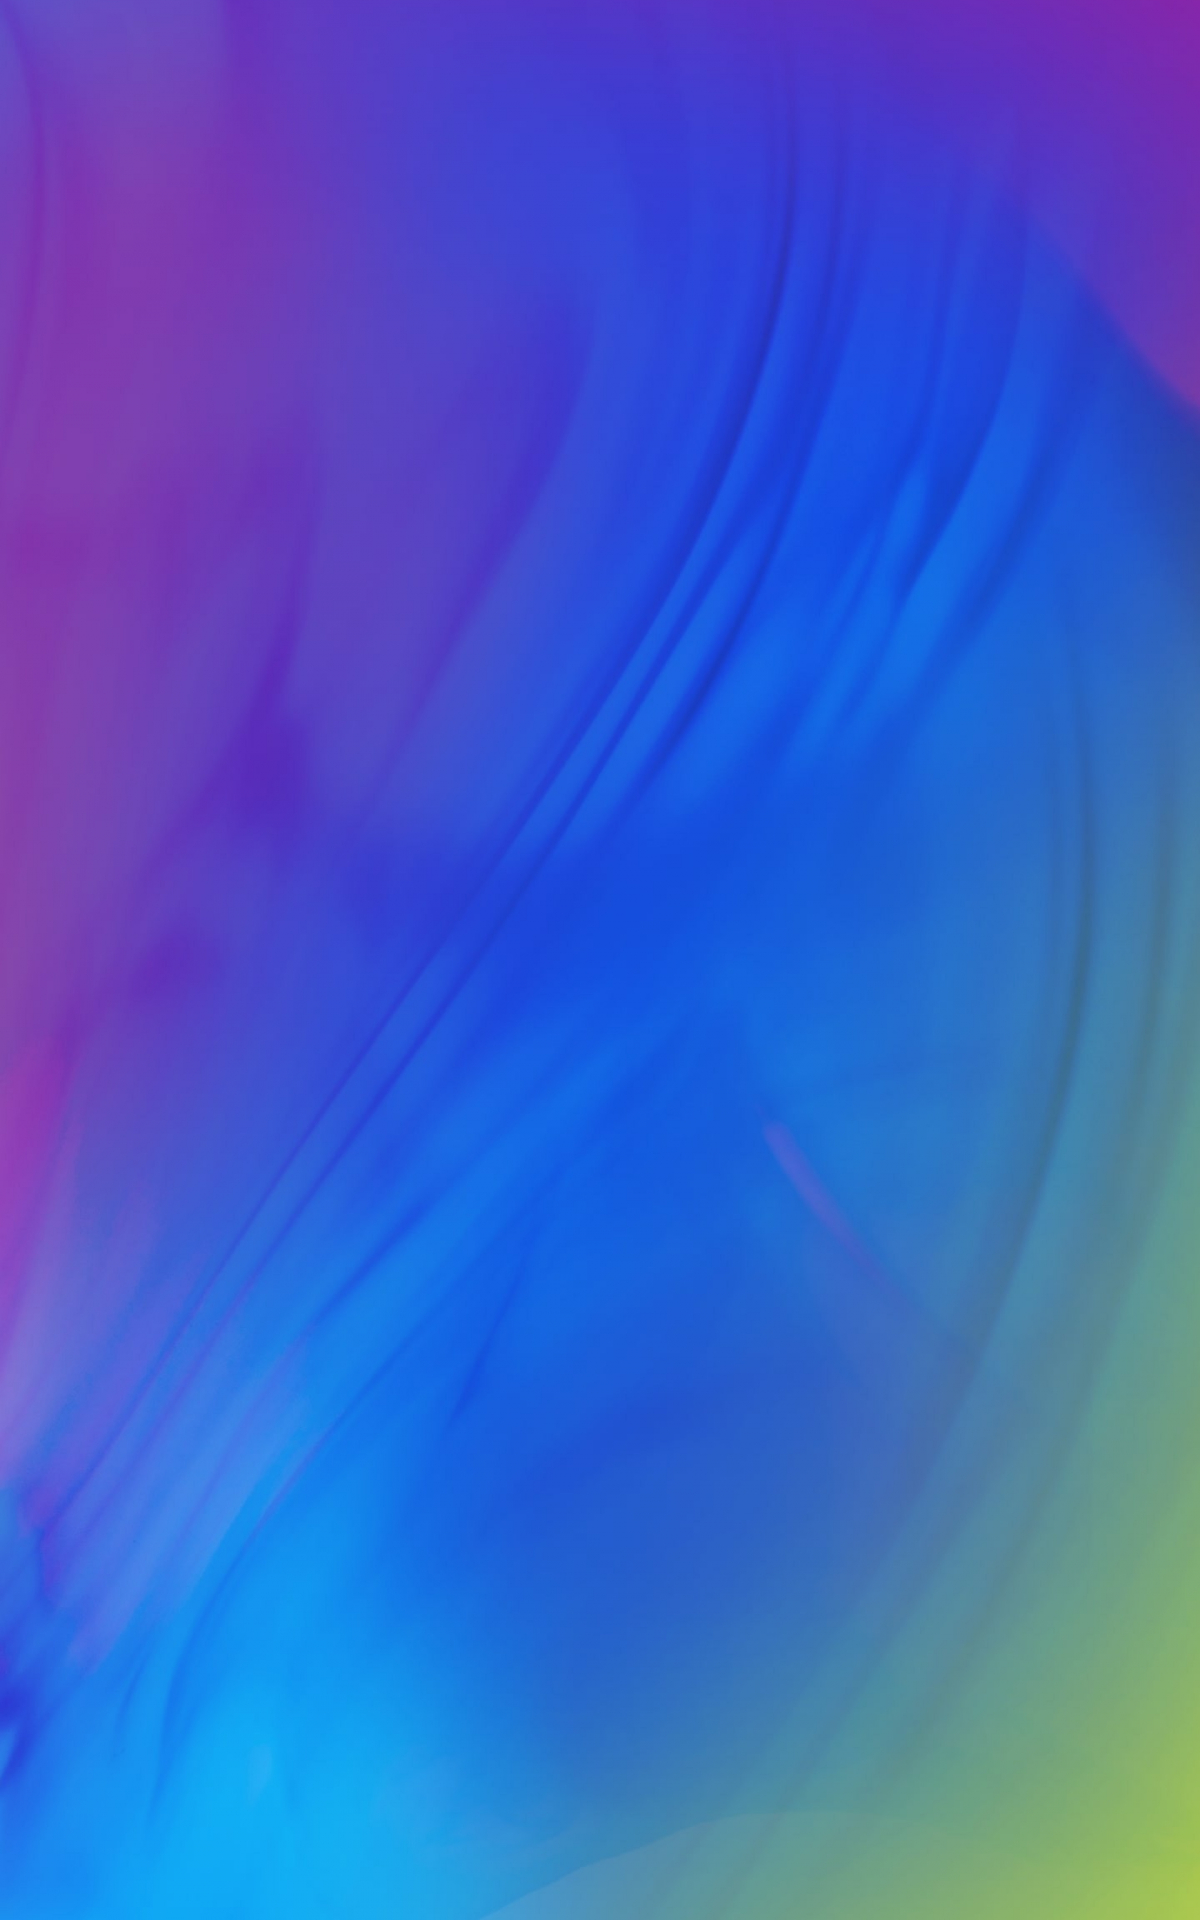 Free Download Wallpaper Samsung Galaxy M10 Abstract Colorful Hd Os 21447 1440x2560 For Your Desktop Mobile Tablet Explore 43 Samsung Galaxy M10 Wallpapers Samsung Galaxy M10 Wallpapers Samsung Galaxy